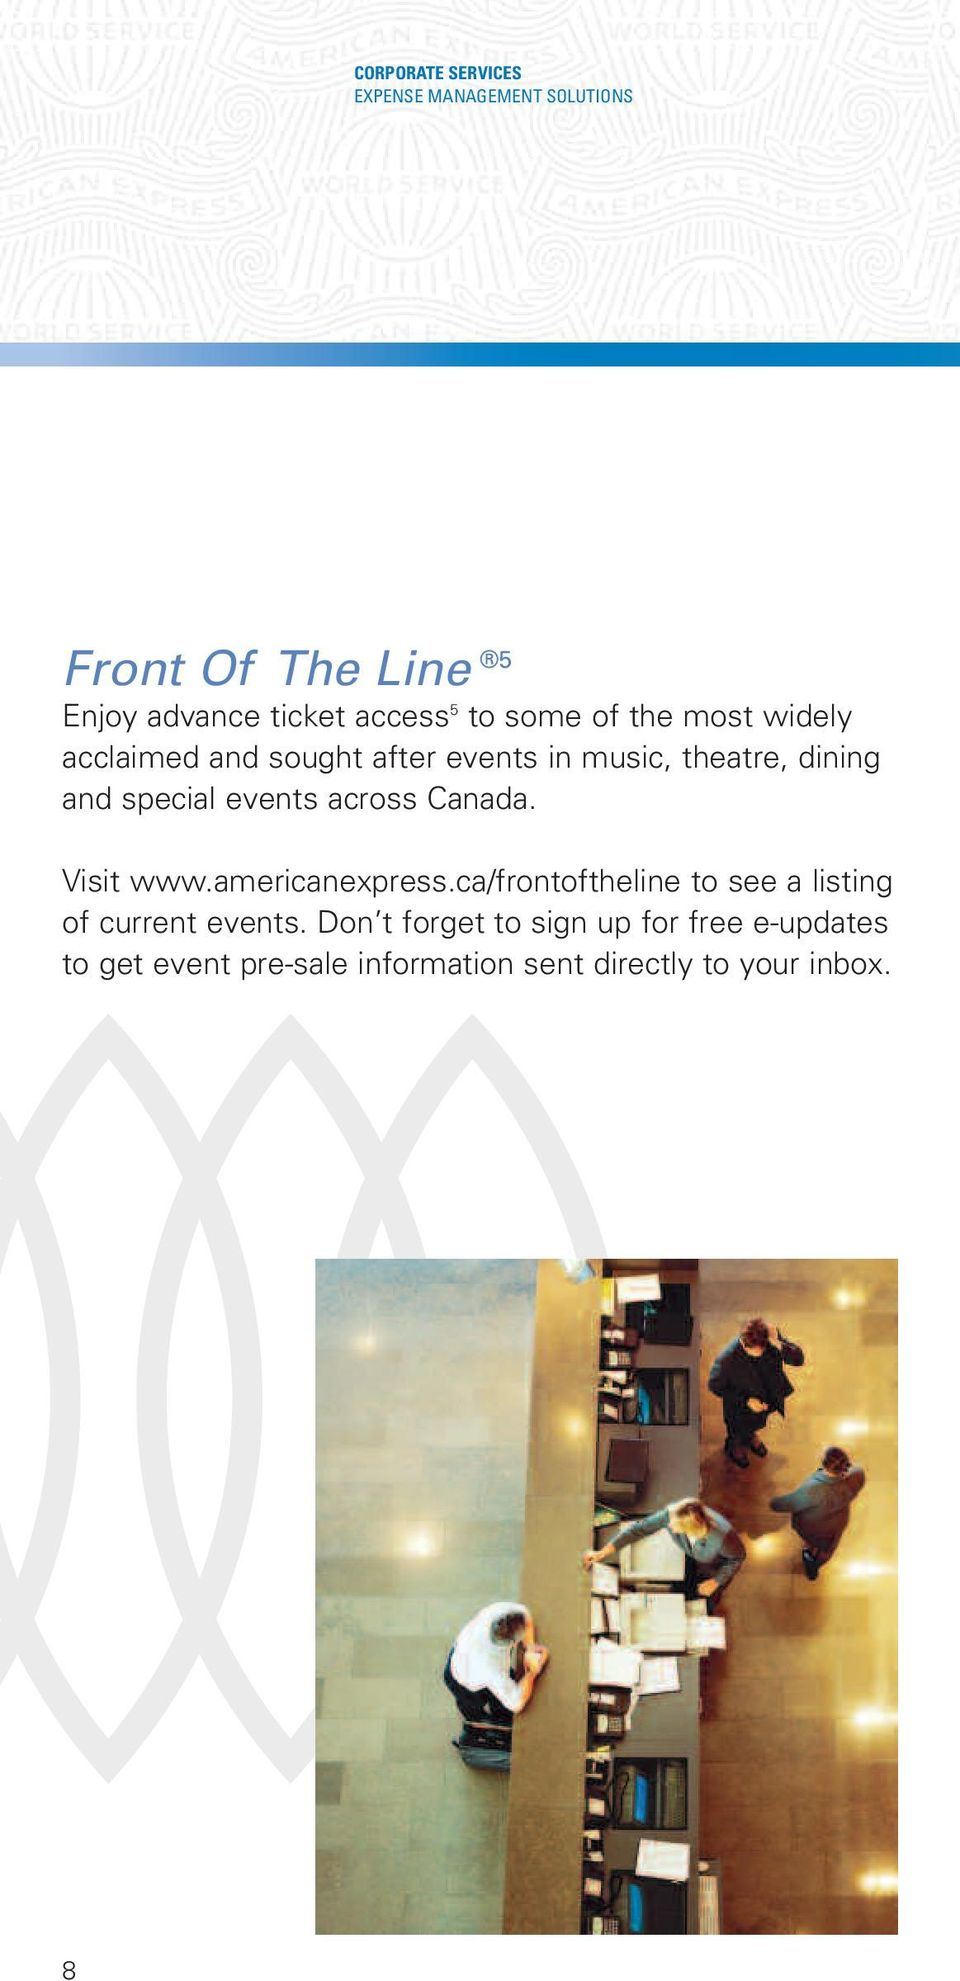 events across Canada. Visit www.americanexpress.ca/frontoftheline to see a listing of current events.